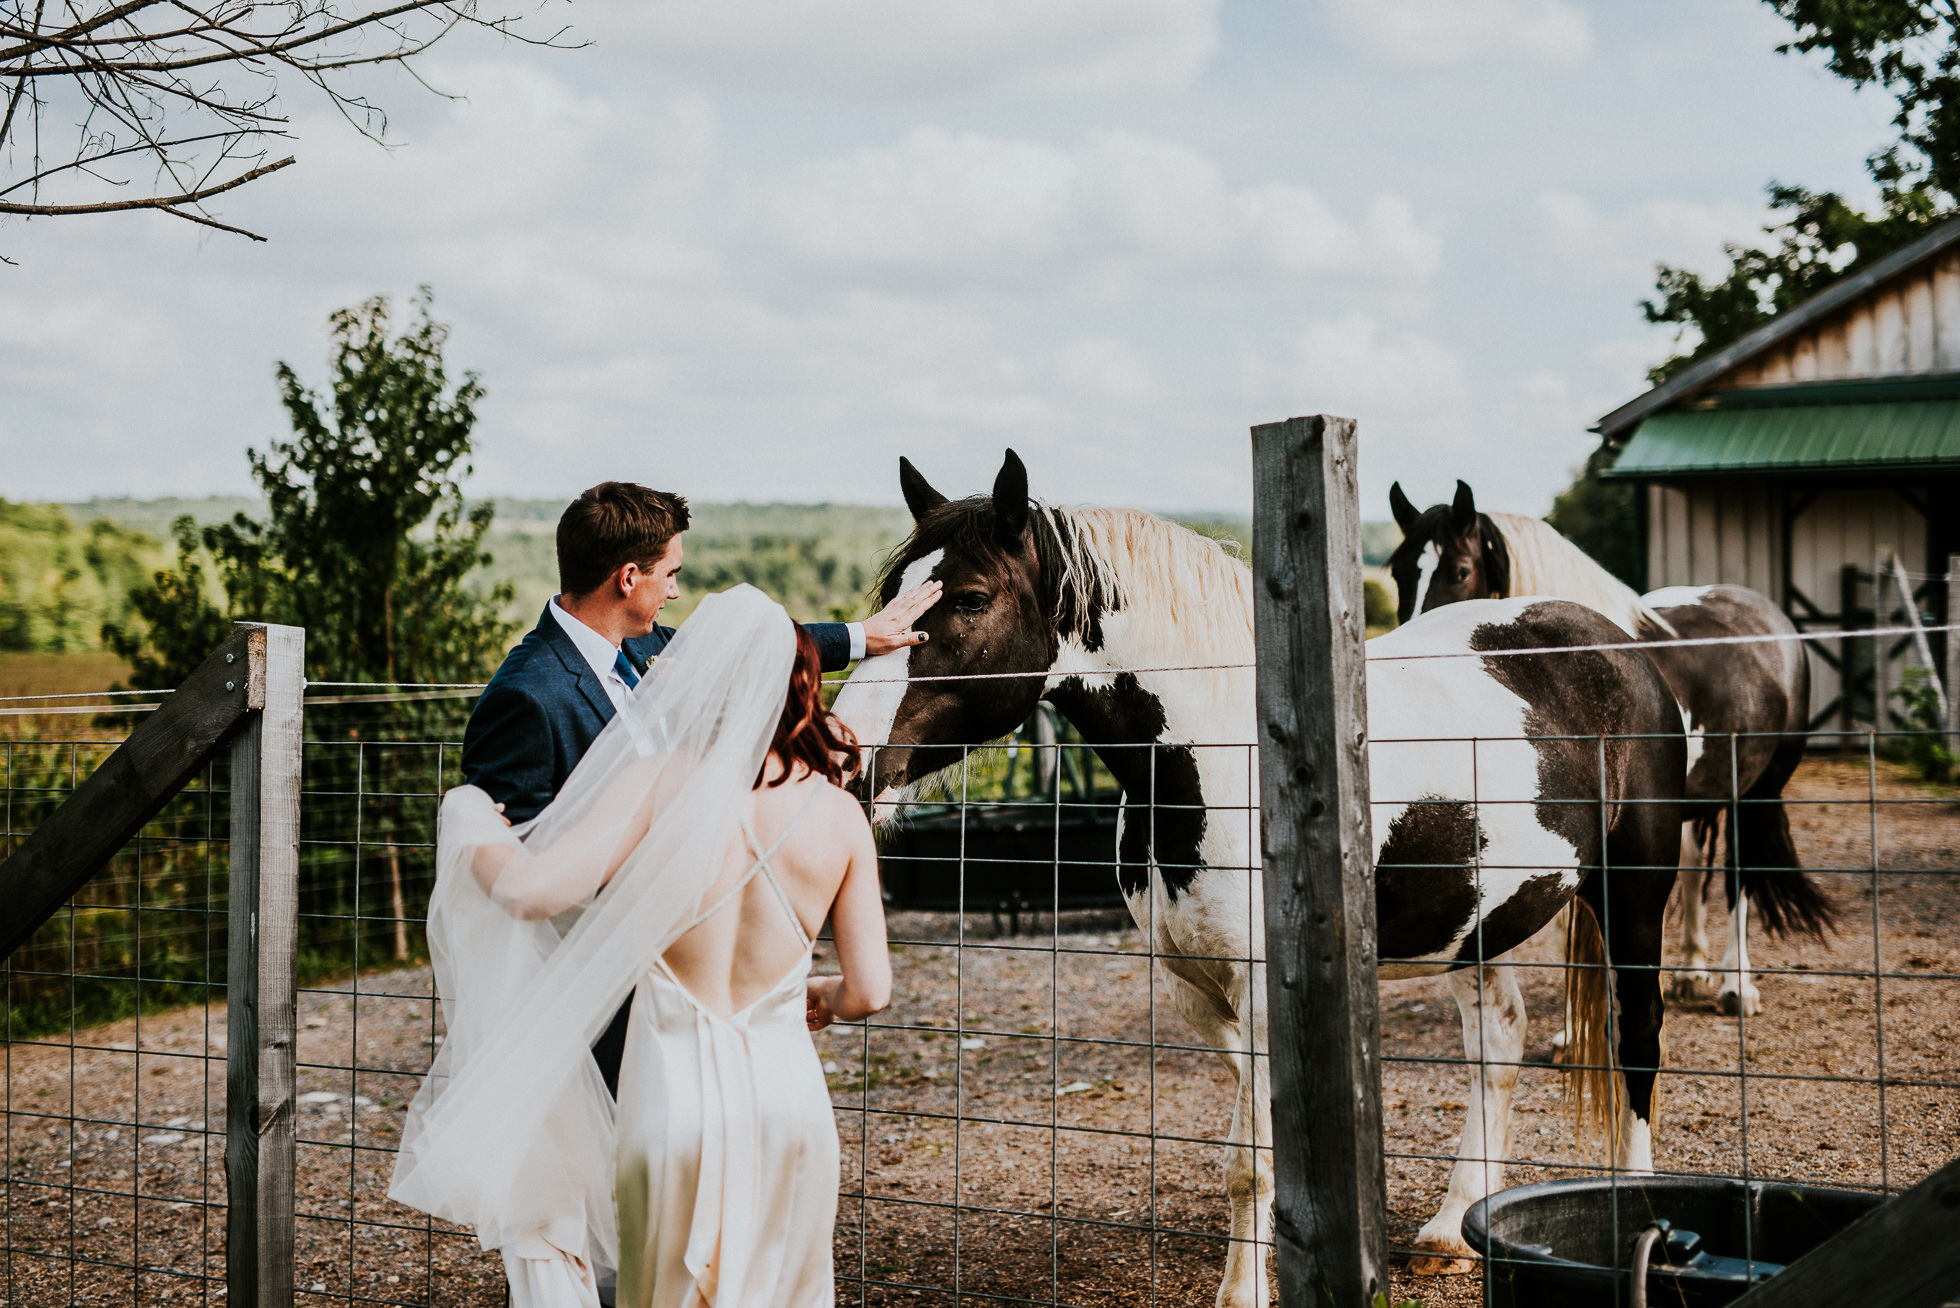 bride and groom with horses at olde tater barn wedding in central bridge, ny photographed by traverse the tides